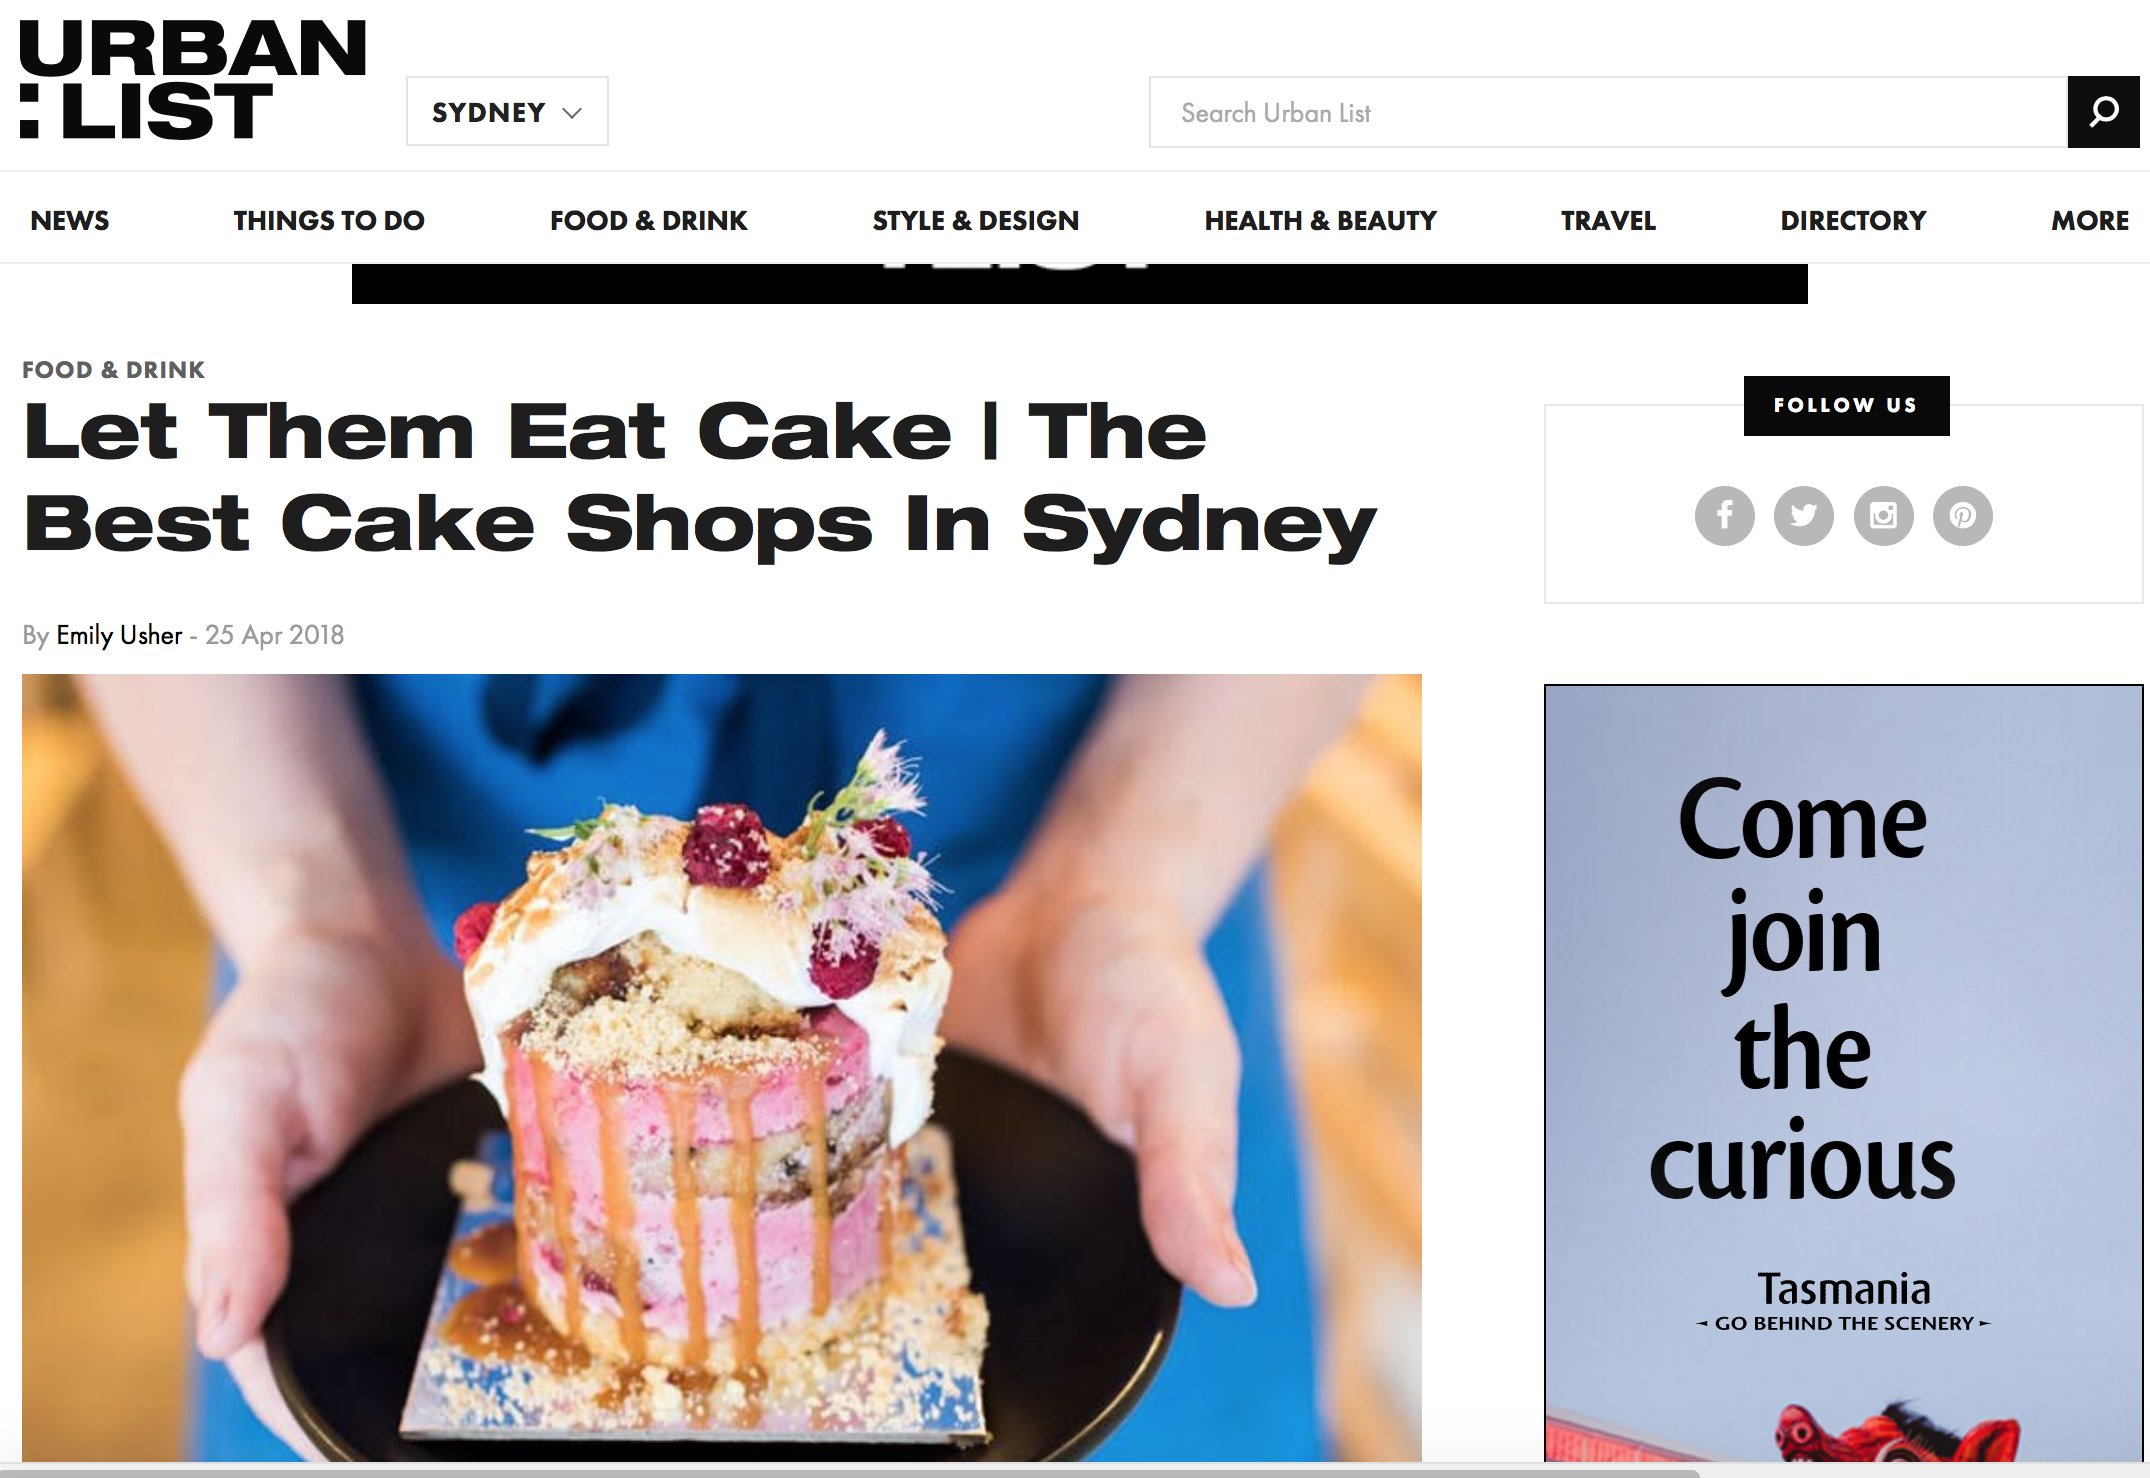 Urban List: The Best Cake Shops in Sydney